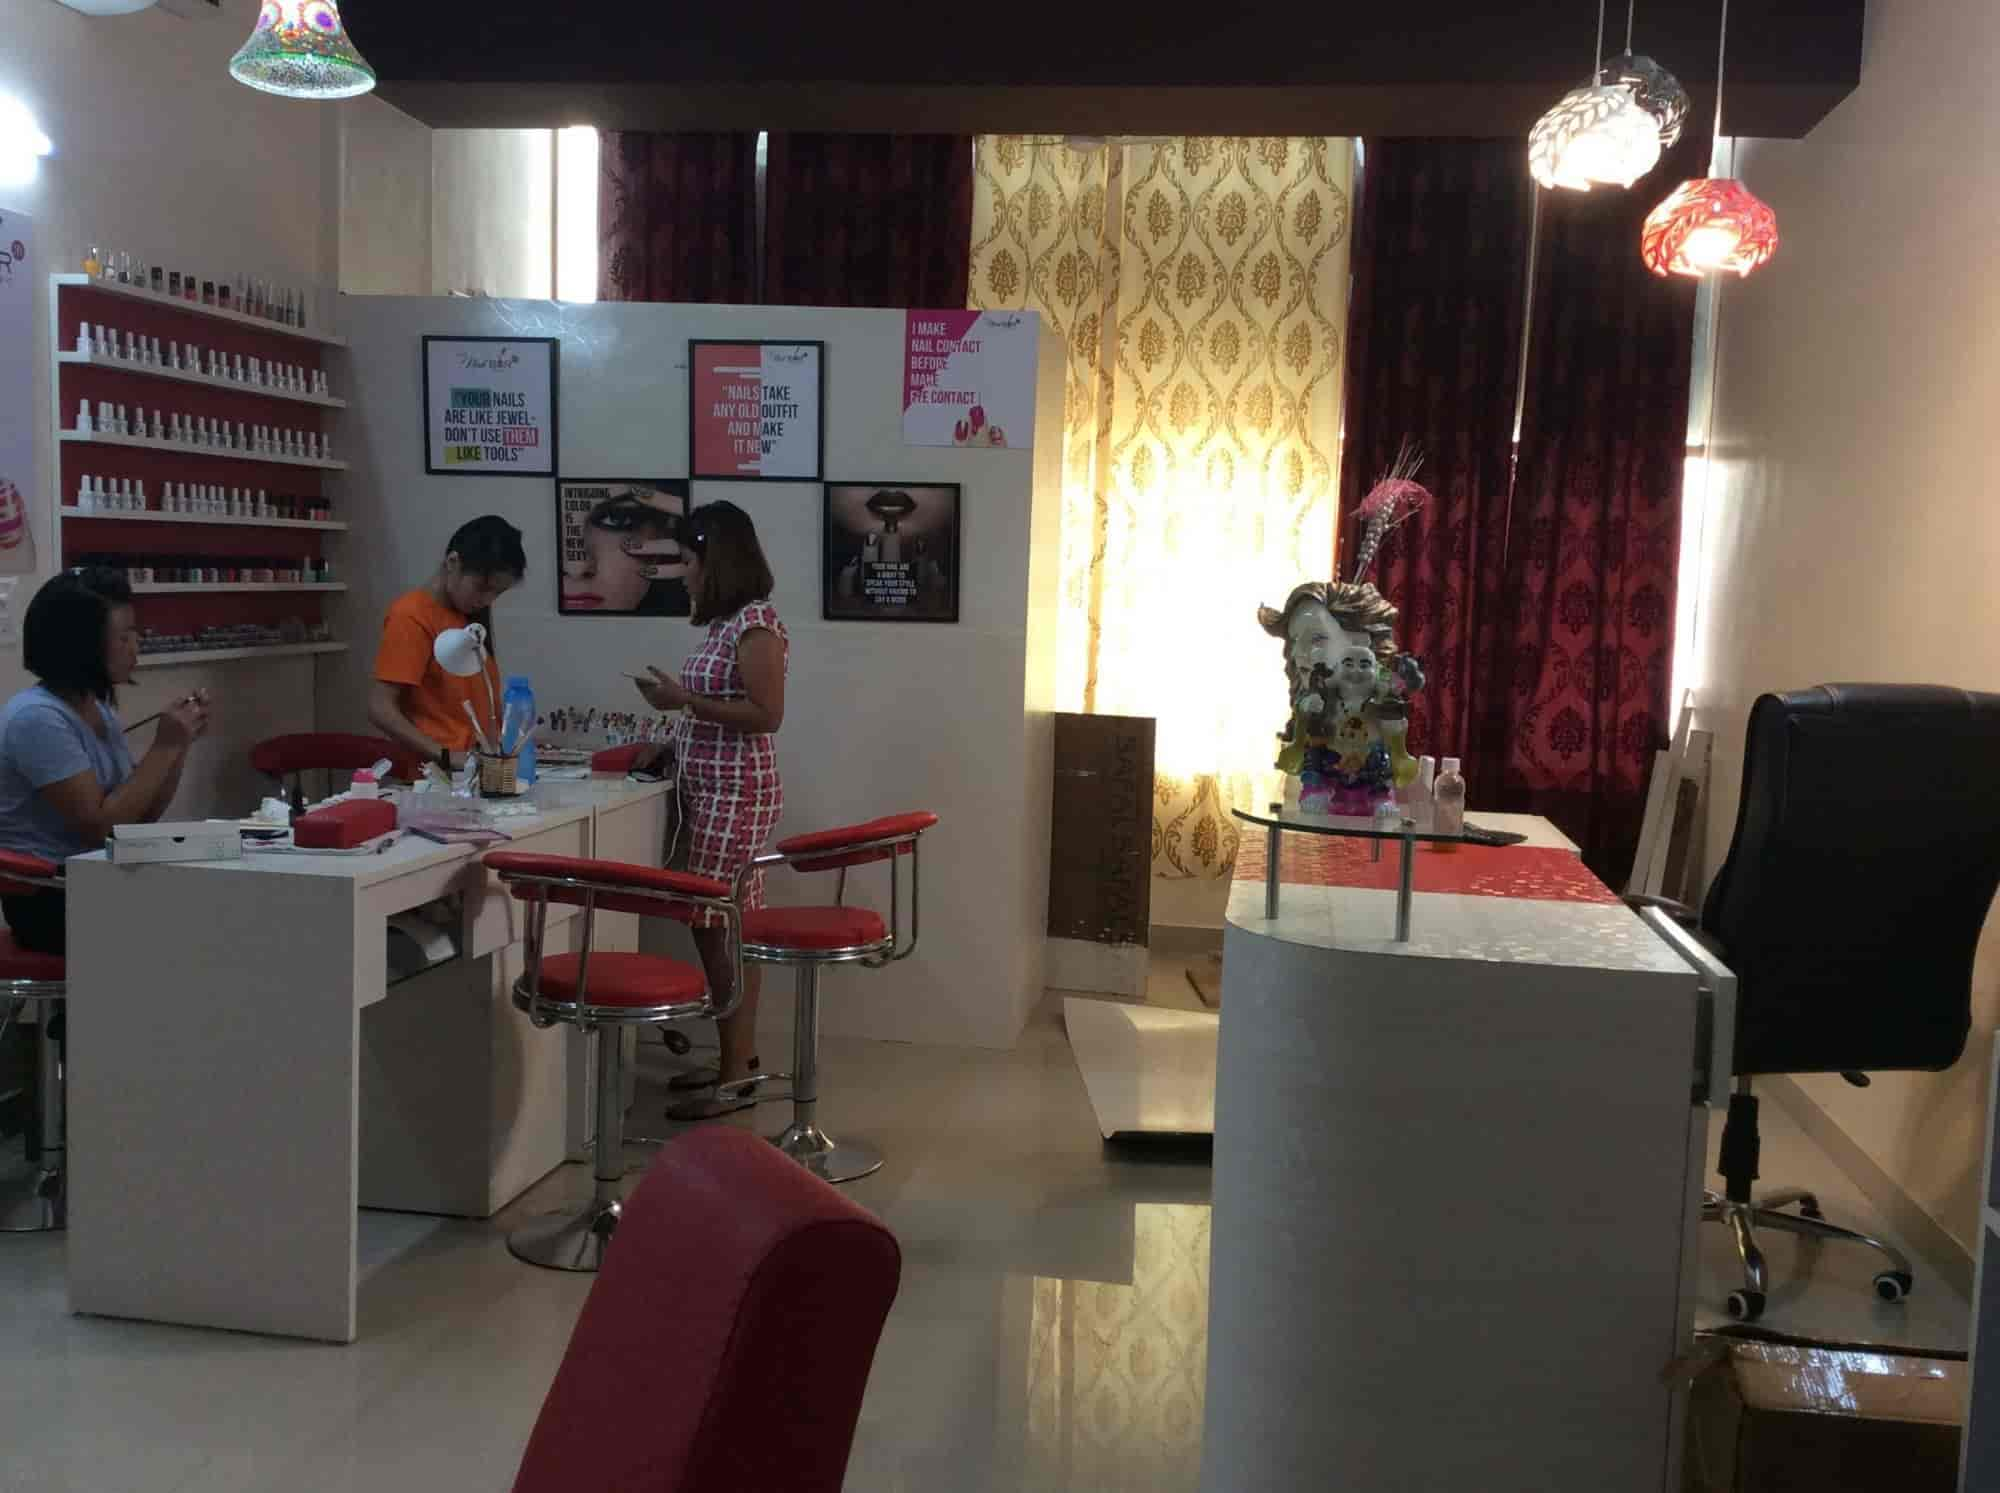 The Nail Bar Photos, Zirakpur Ho, Chandigarh- Pictures & Images